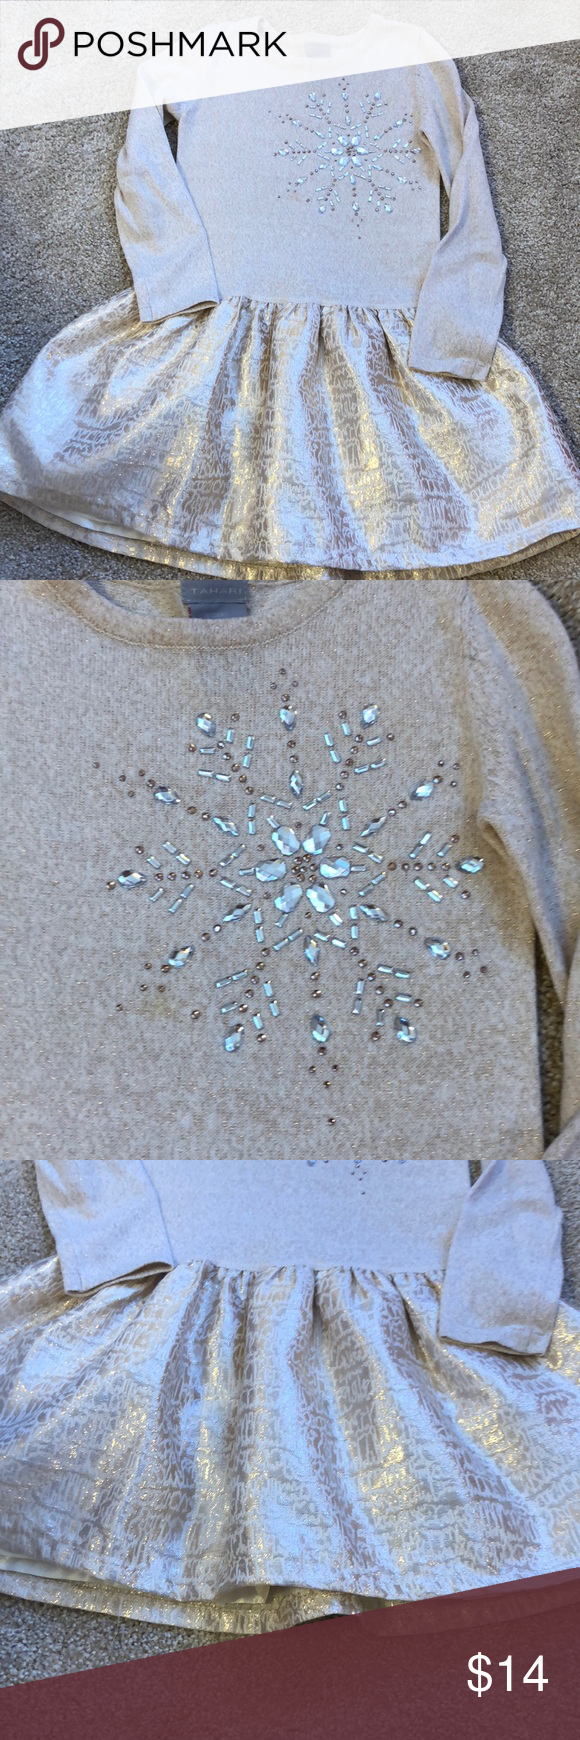 2ce1cb090644 Girls holiday dress sparkly and snowflake jewels So glamorous! Soft light  weight sweater material on top